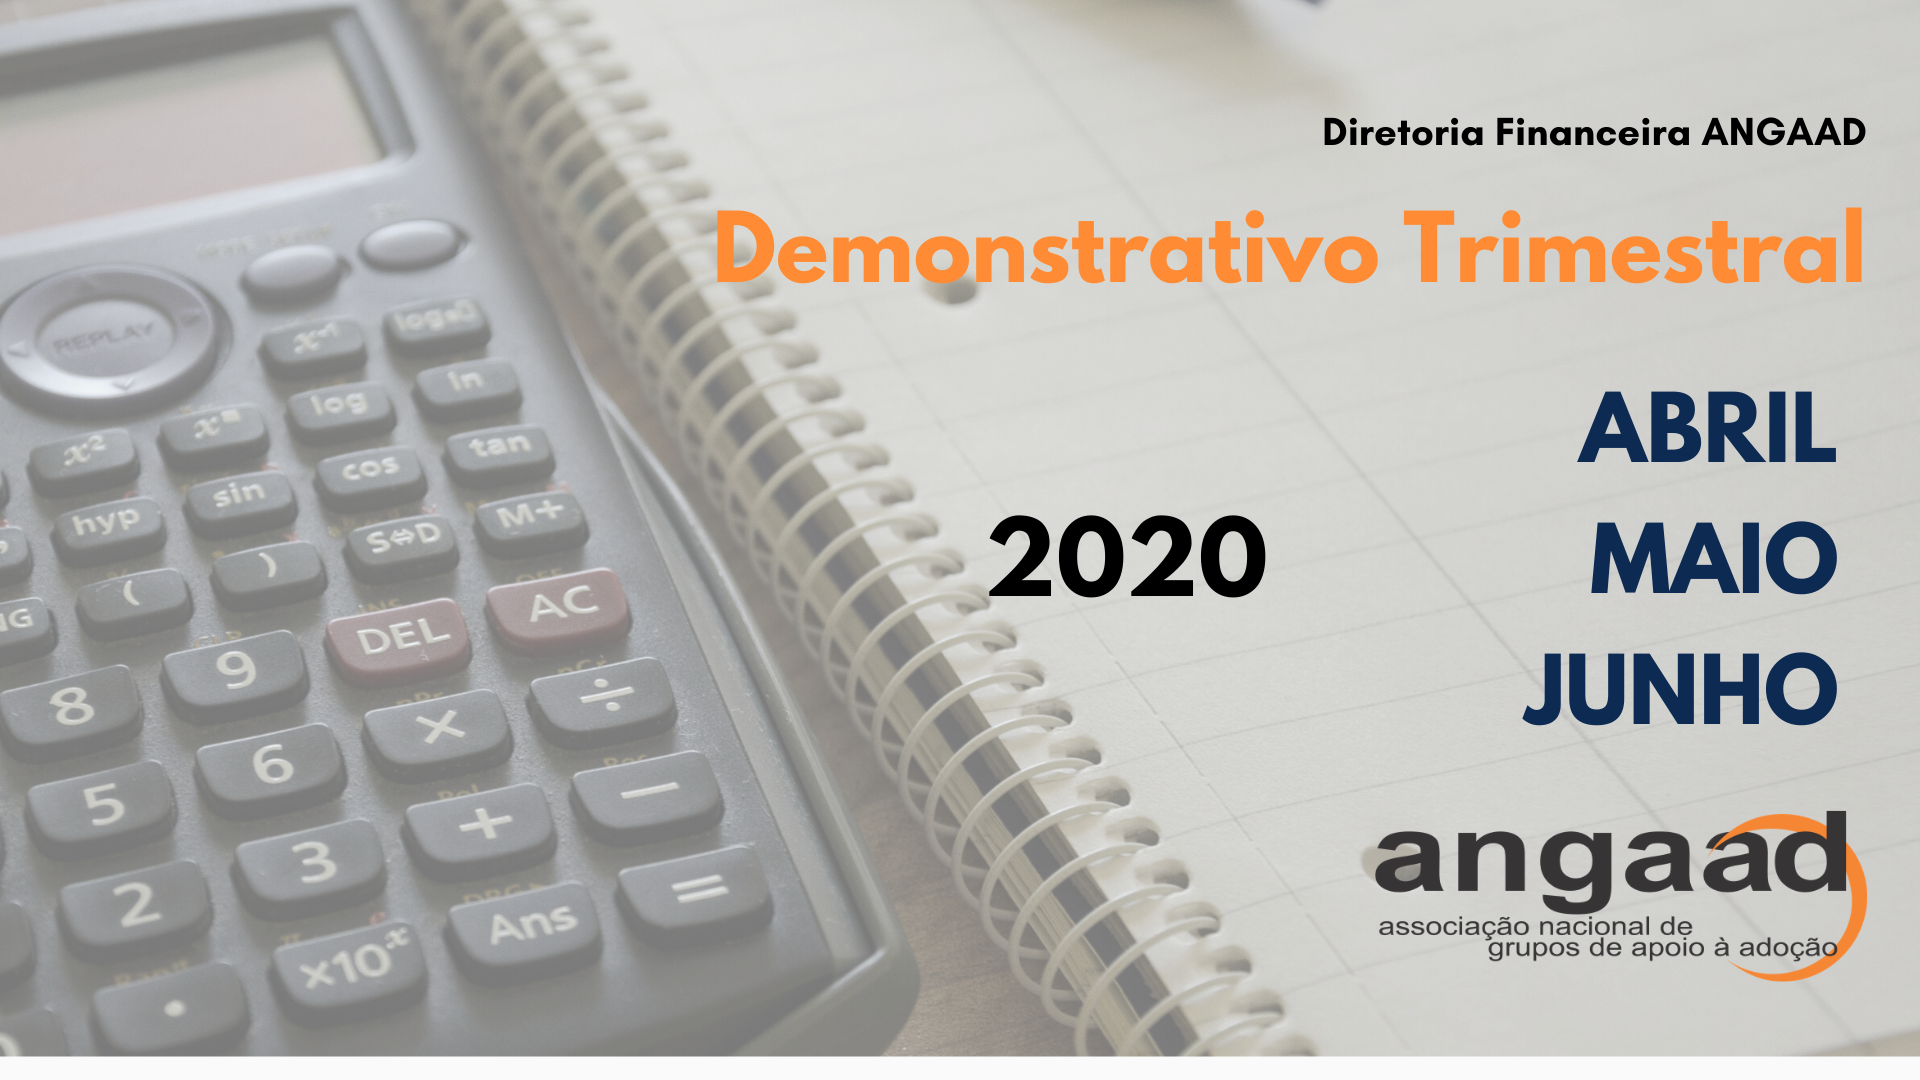 Demonstrativos Trimestrais – abr., mai., e jun. 2020